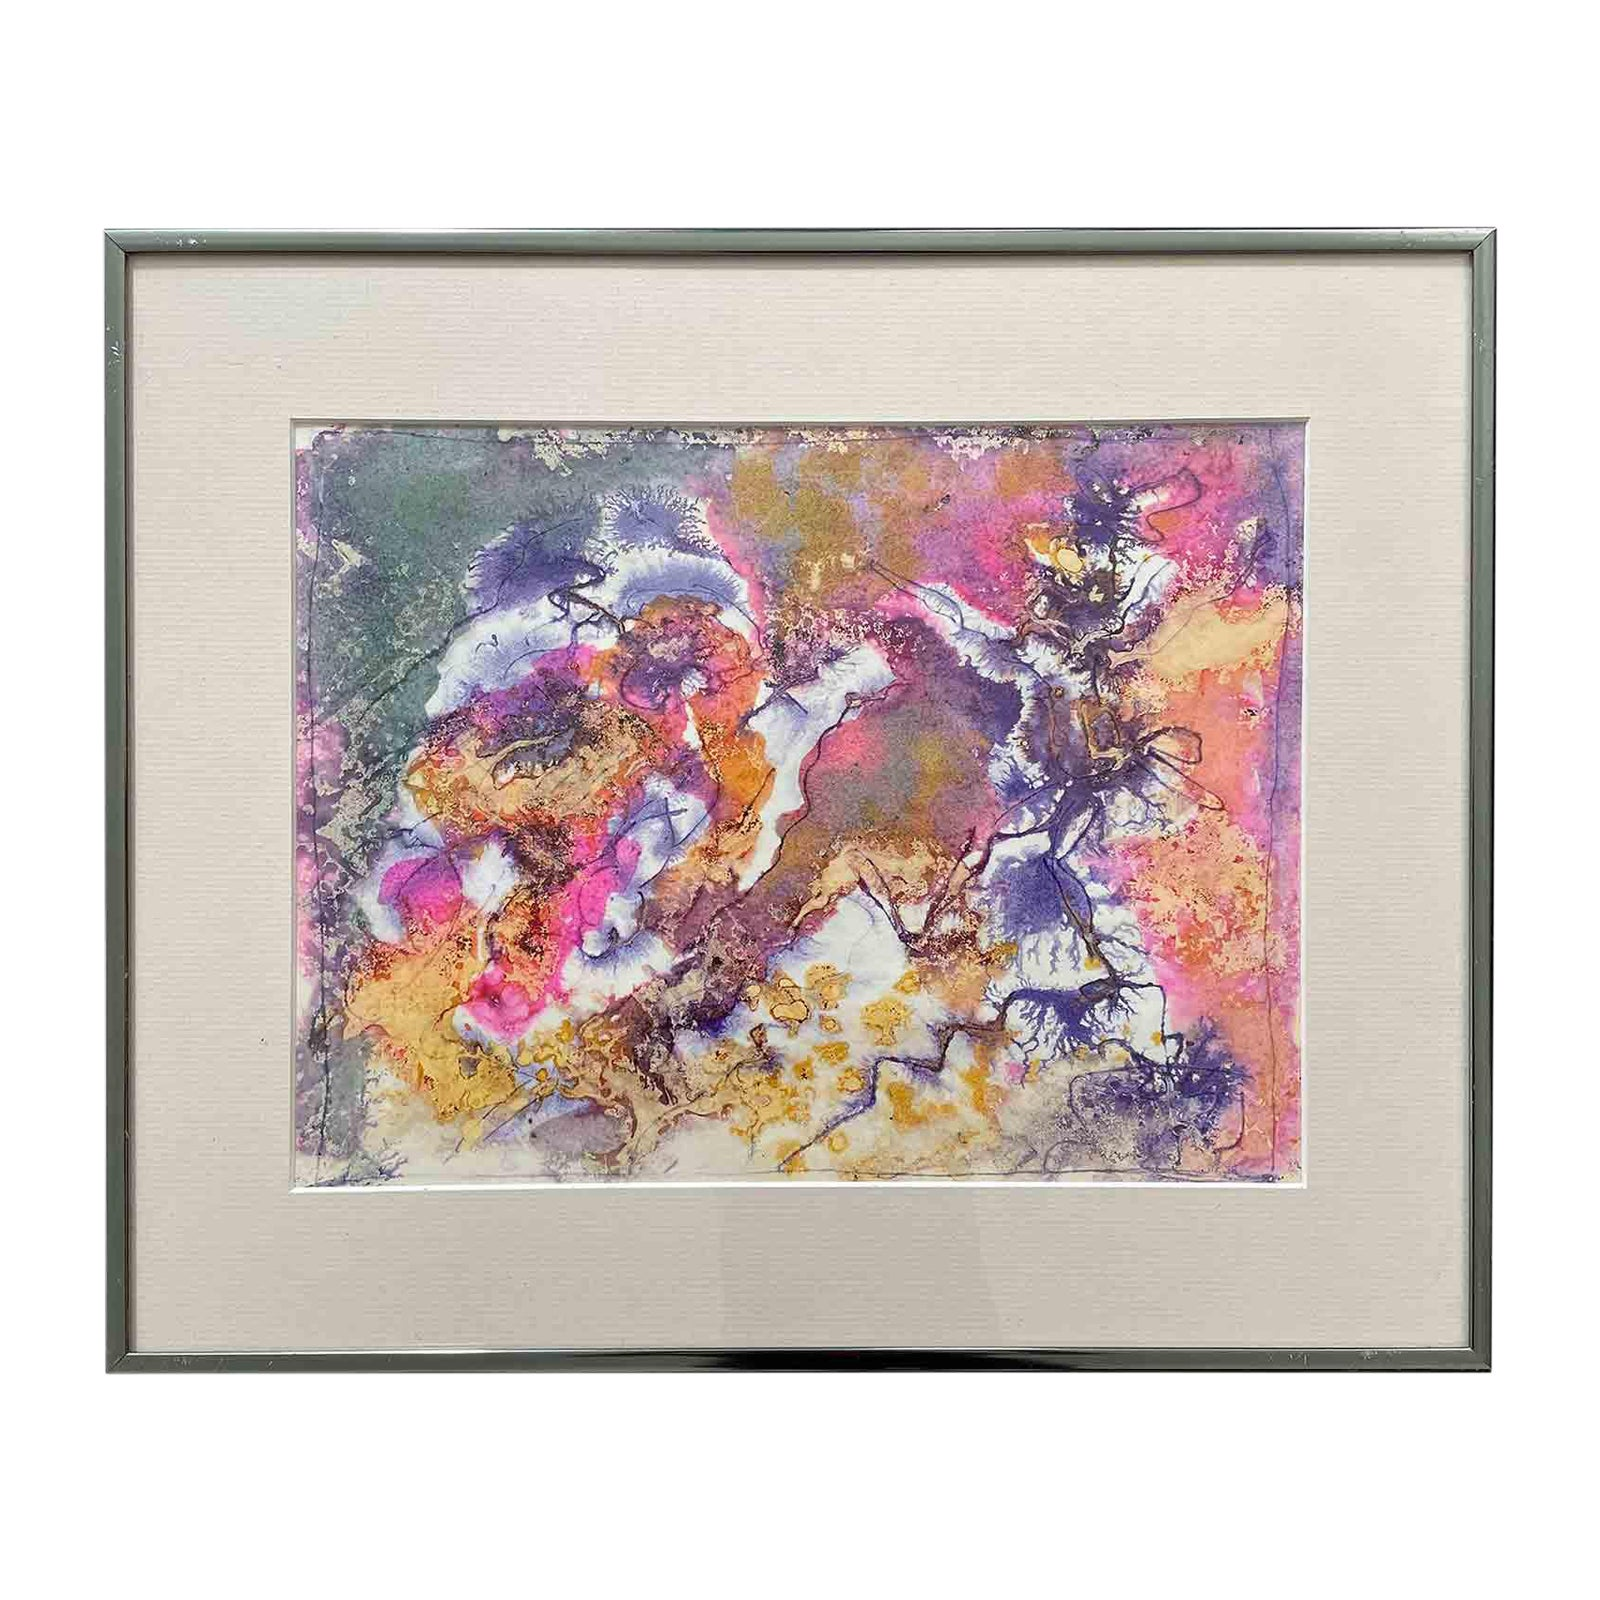 $159 - Late 20th Century Postmodern Abstract Watercolor Painting, Framed